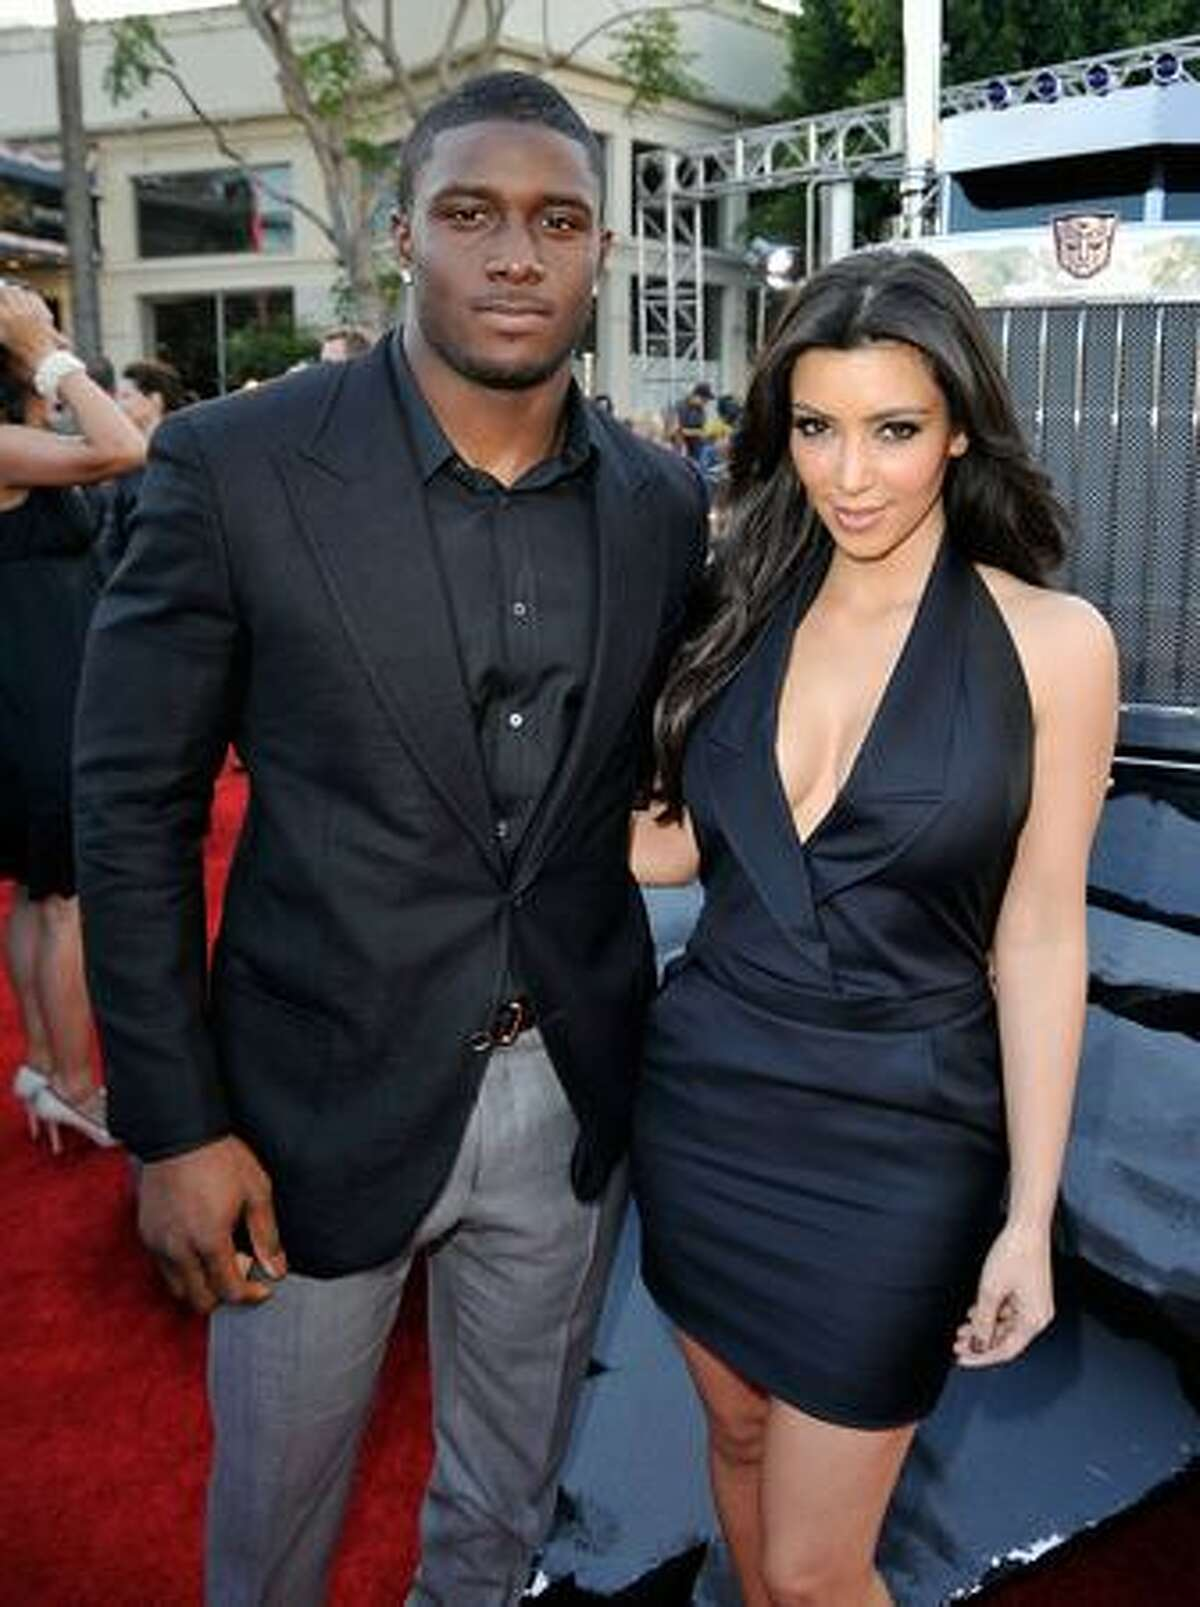 NFL player Reggie Bush (L) and TV personality Kim Kardashian arrive at the premiere of Dreamworks'